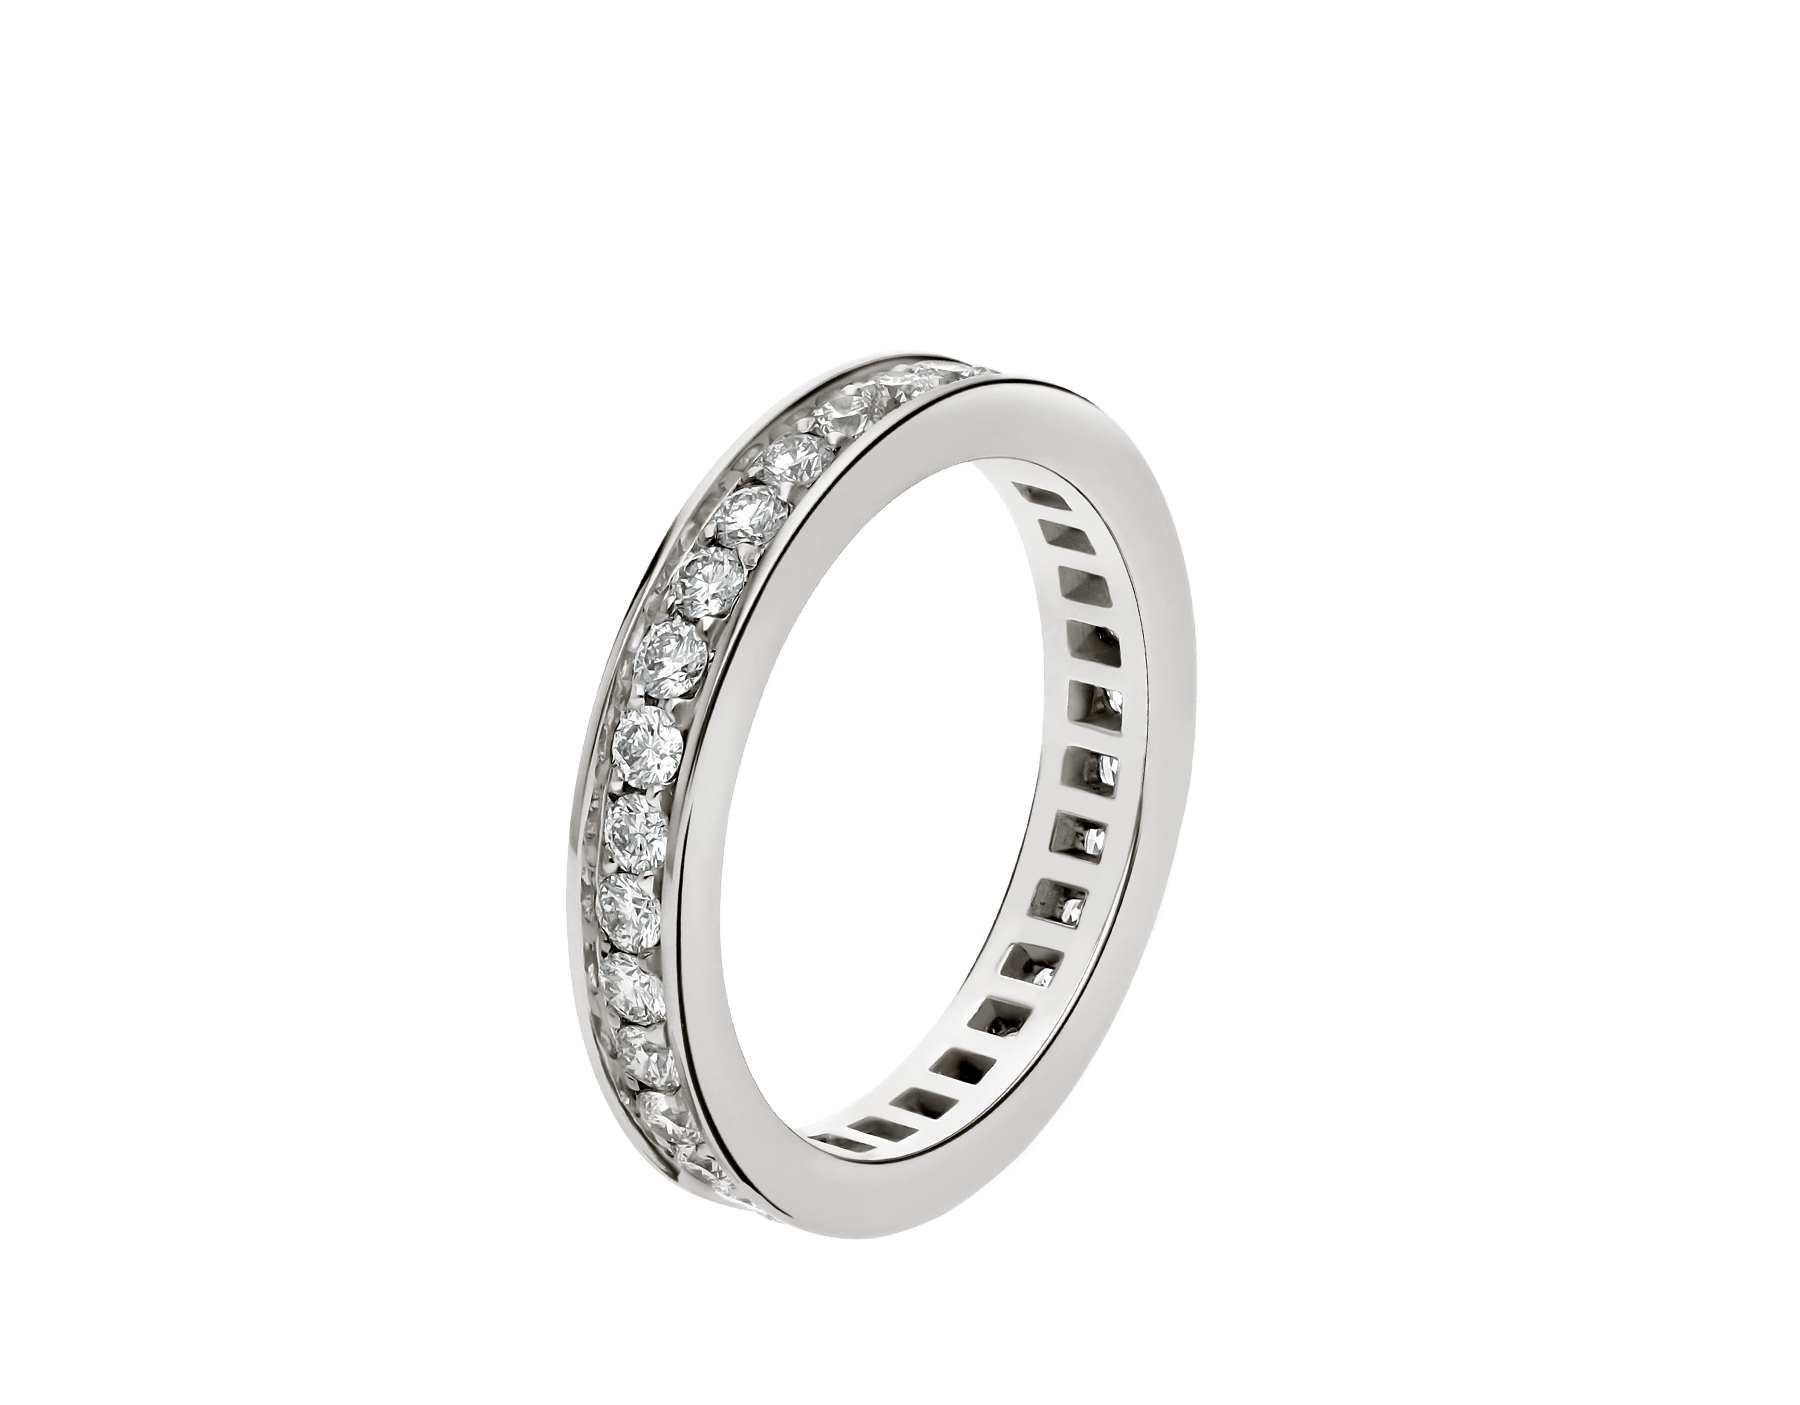 MarryMe platinum wedding band with full pavé diamonds AN852592 image 1